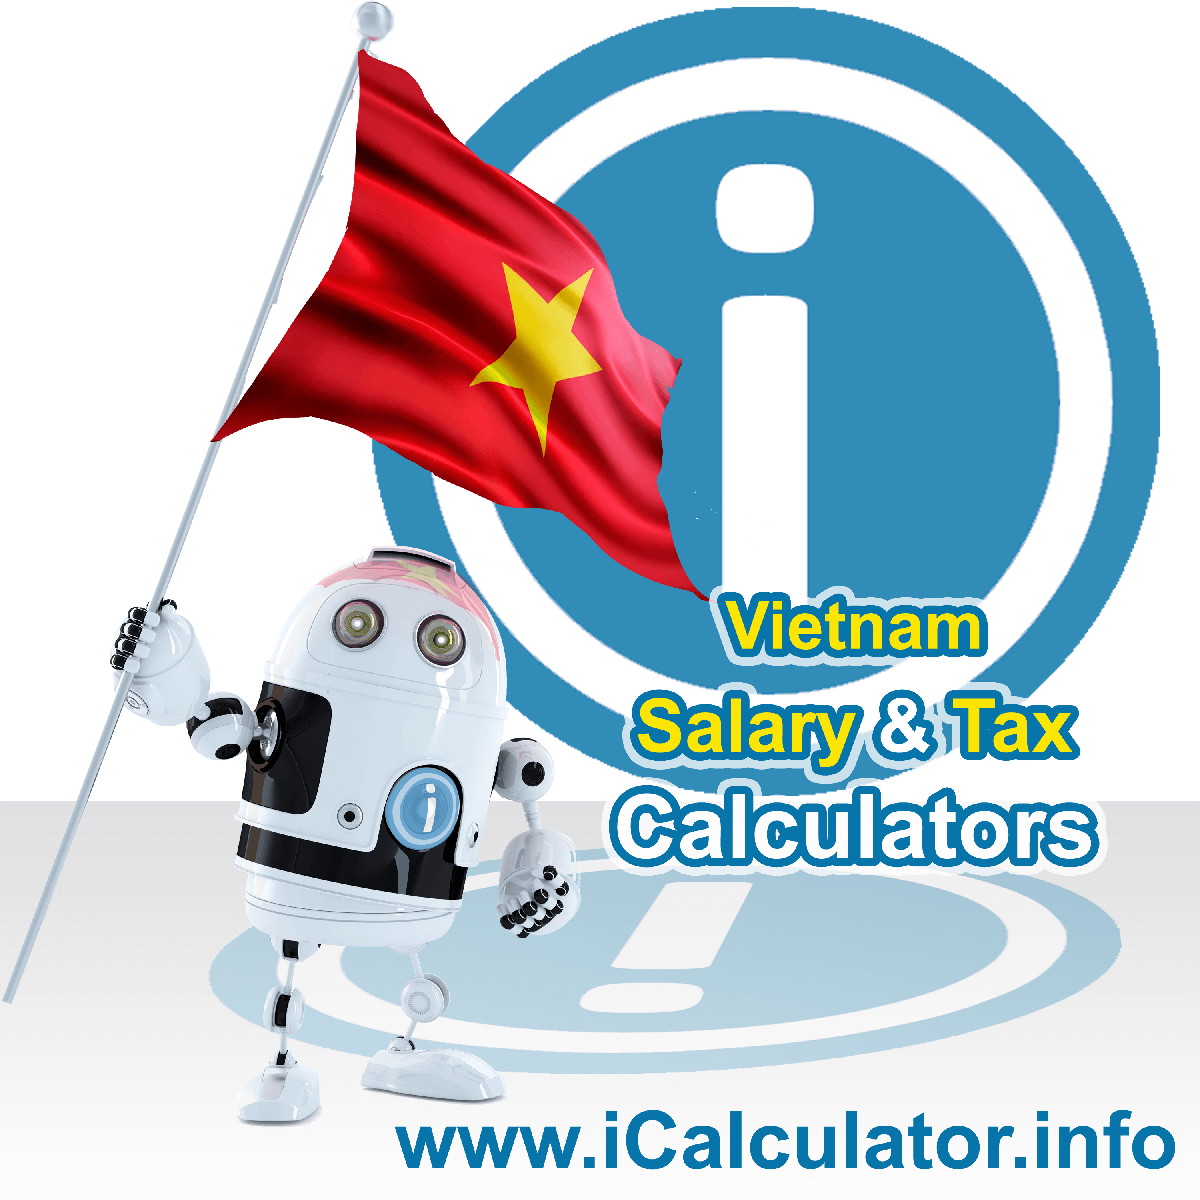 Vietnam Wage Calculator. This image shows the Vietnam flag and information relating to the tax formula for the Vietnam Tax Calculator